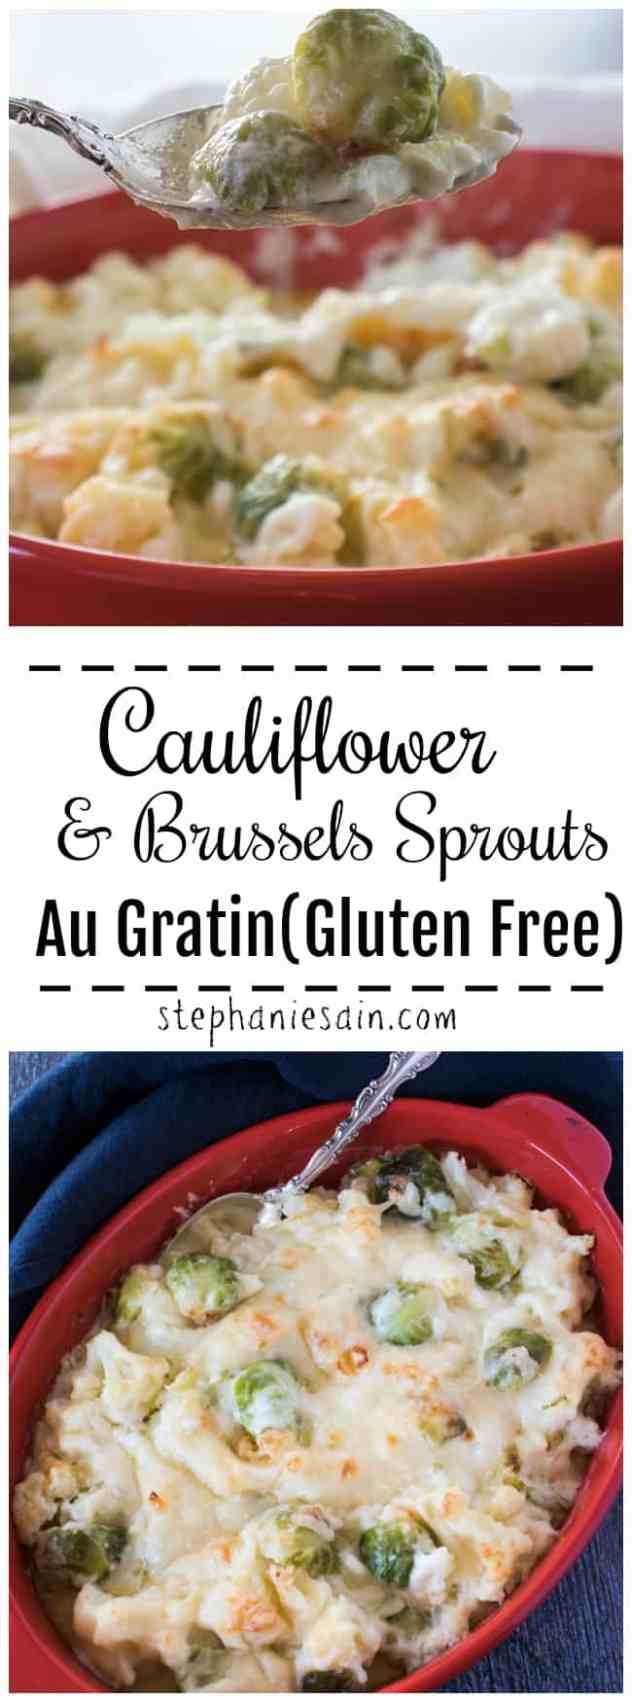 This Cauliflower Au Gratin is made extra special with the addition of brussels sprouts. Creamy, cheesy, & delicious with a light golden crust. Great for a holiday side or anytime you want a special dish. Gluten Free.